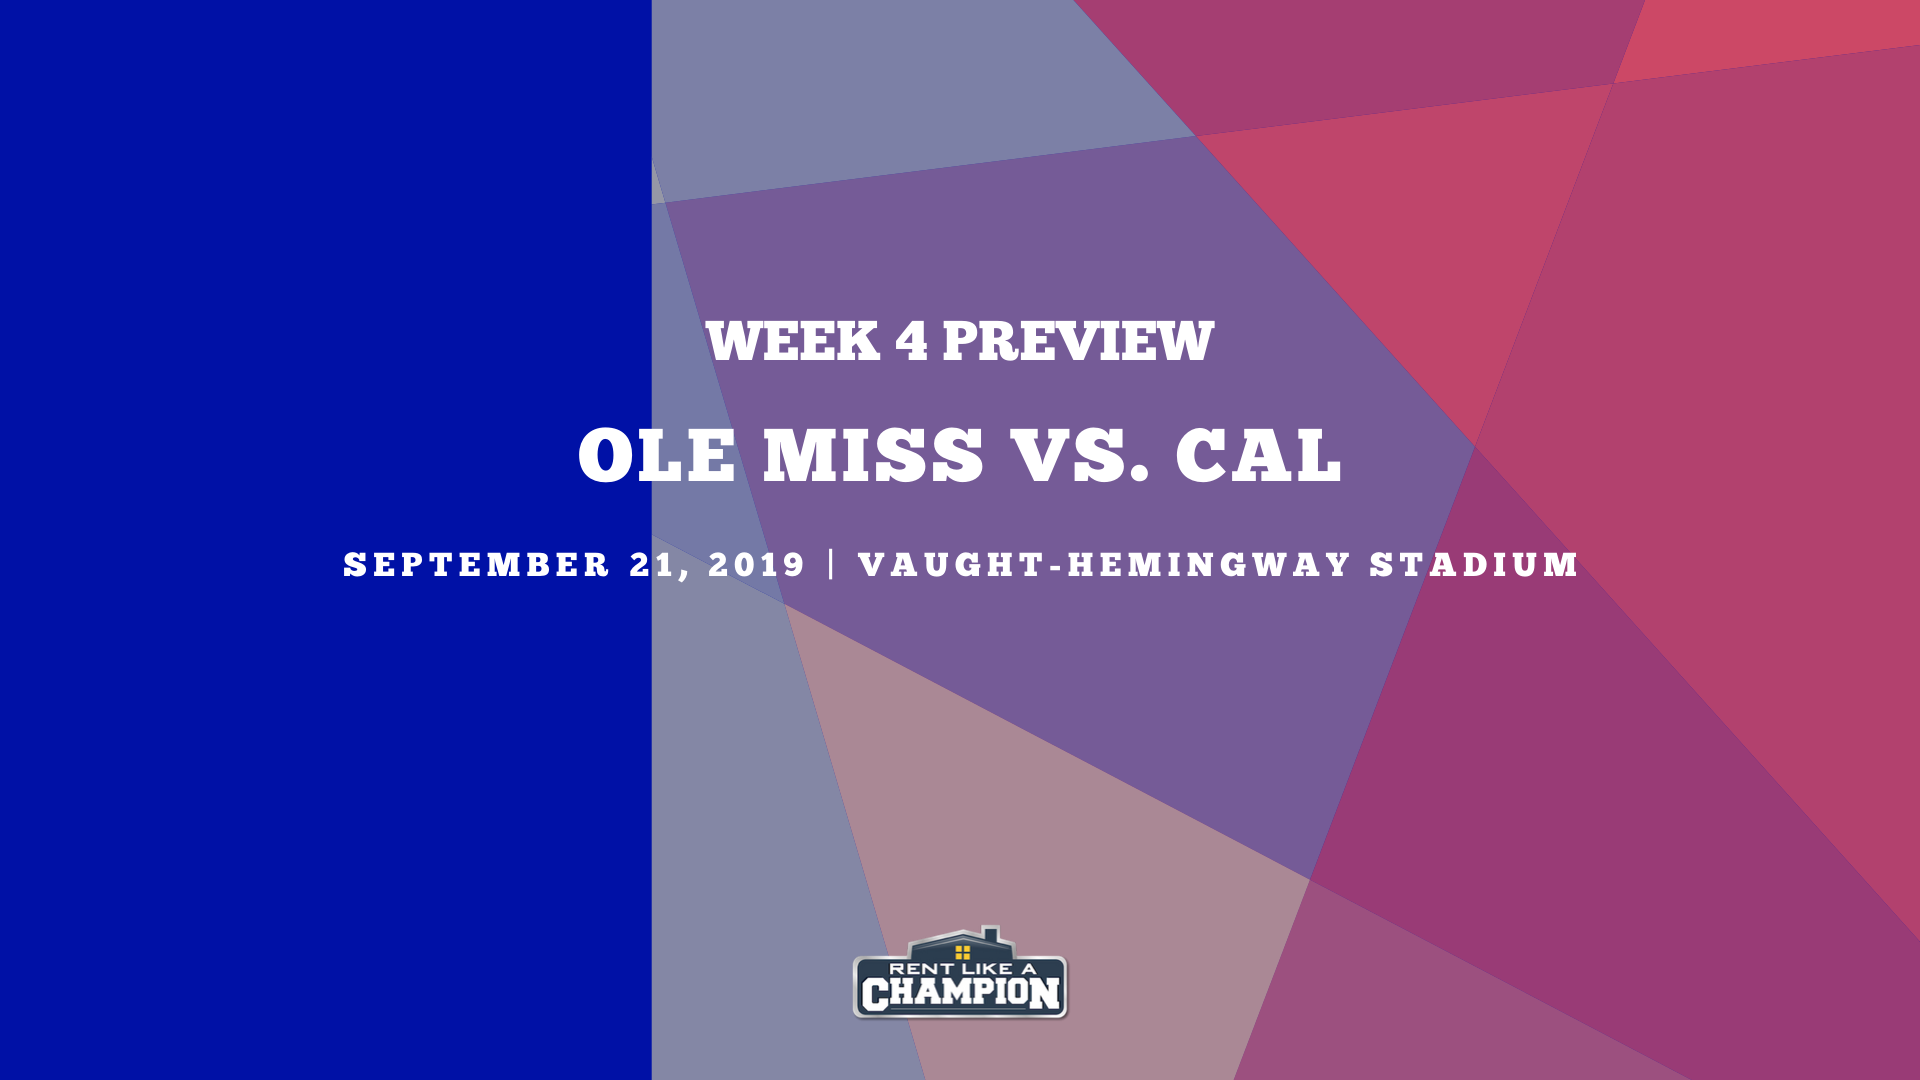 Ole Miss vs. Cal: Preview, keys to the game, and predictions